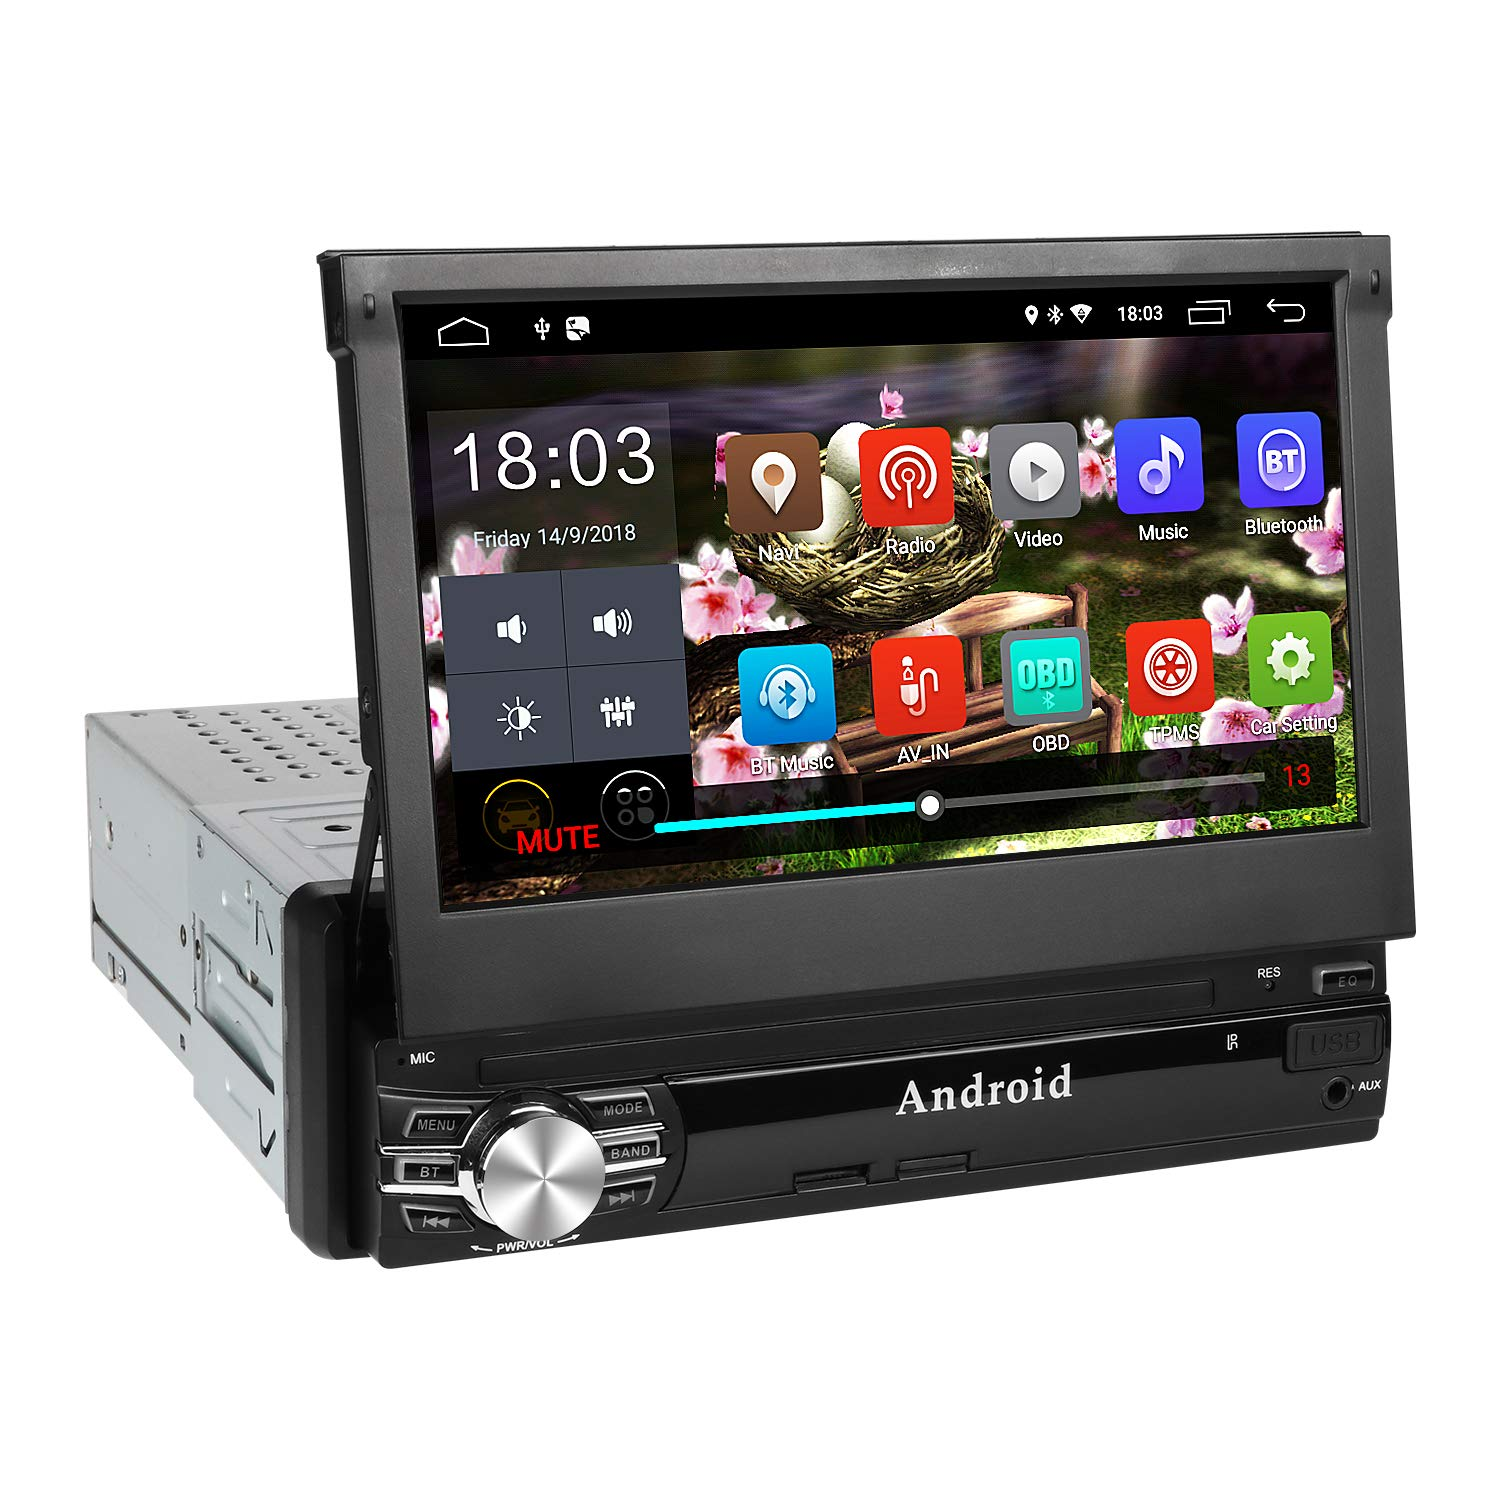 1Din Autoradio, amkle Autoradio Bluetooth 7Zoll Android 6.0 Touchscreen - GPS Navigator - Radio FM/AM/MP3/SD/USB/MP5 - Stereo Video Lenkradsteuerung Media Receiver - Rü ckfahrkamera - Freisprechen